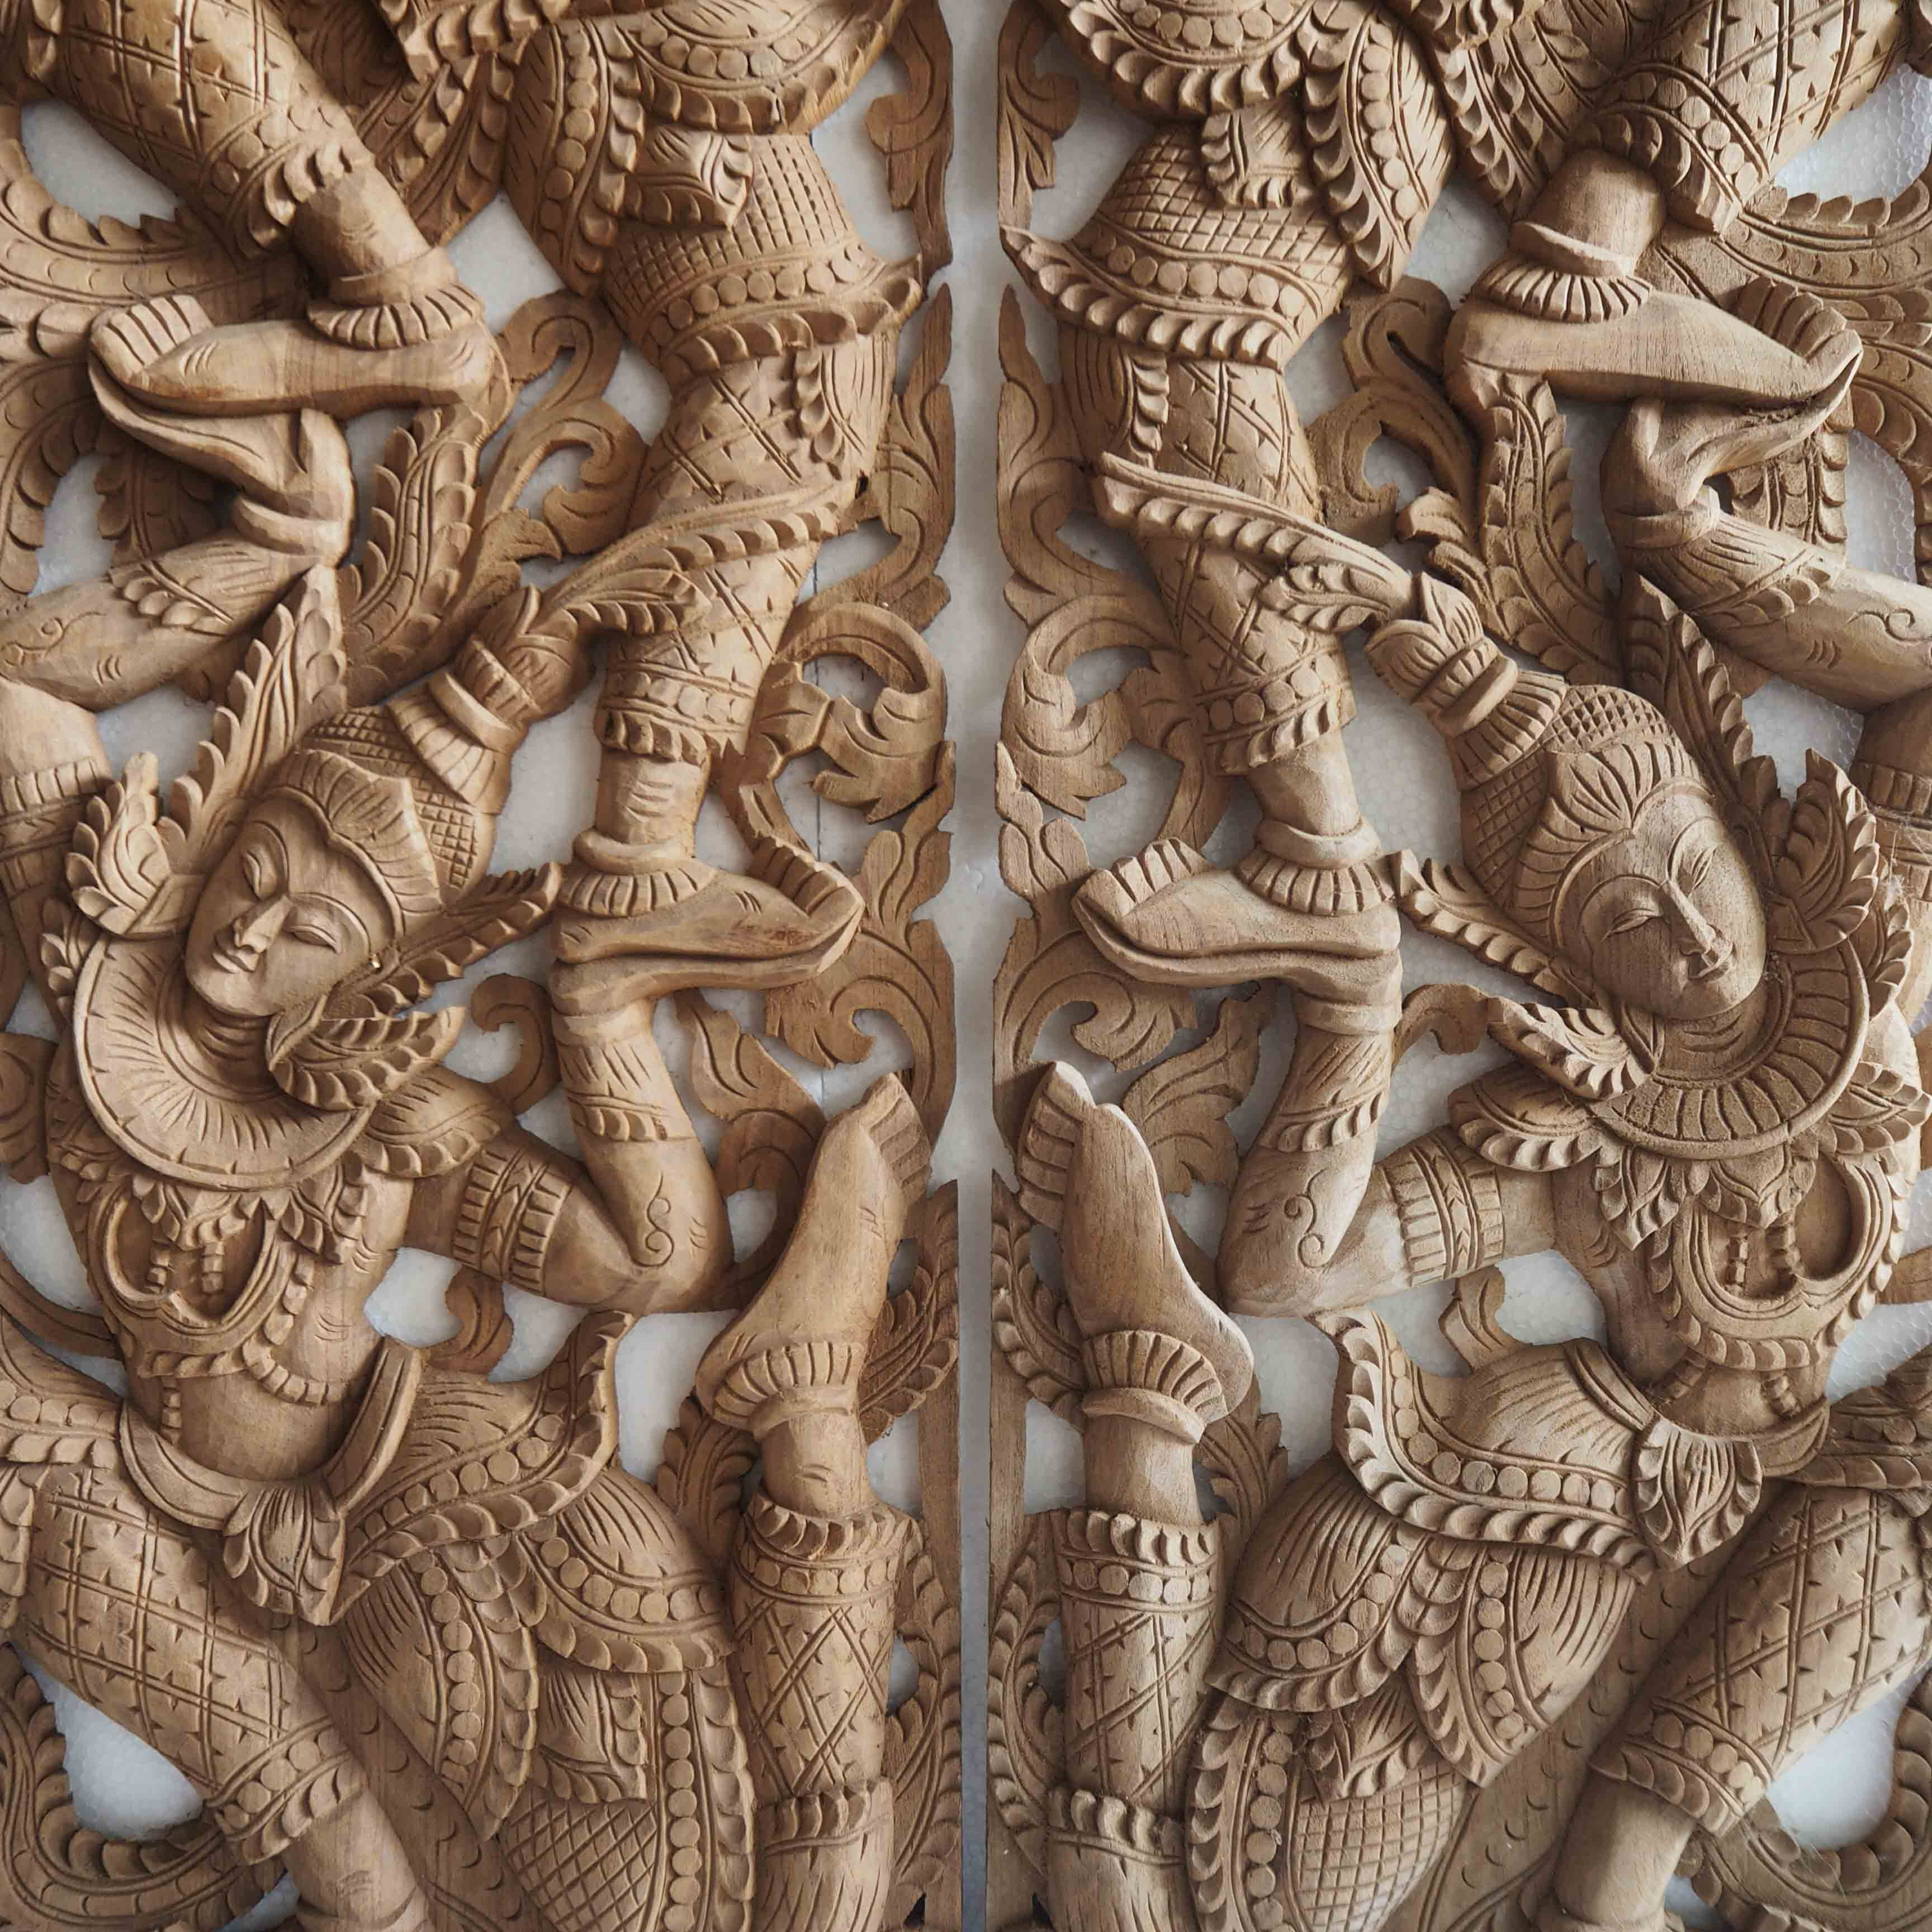 Most Current Pair Of Wooden Wall Art Panel From Thailand – Siam Sawadee Inside Wooden Wall Art Panels (View 3 of 15)